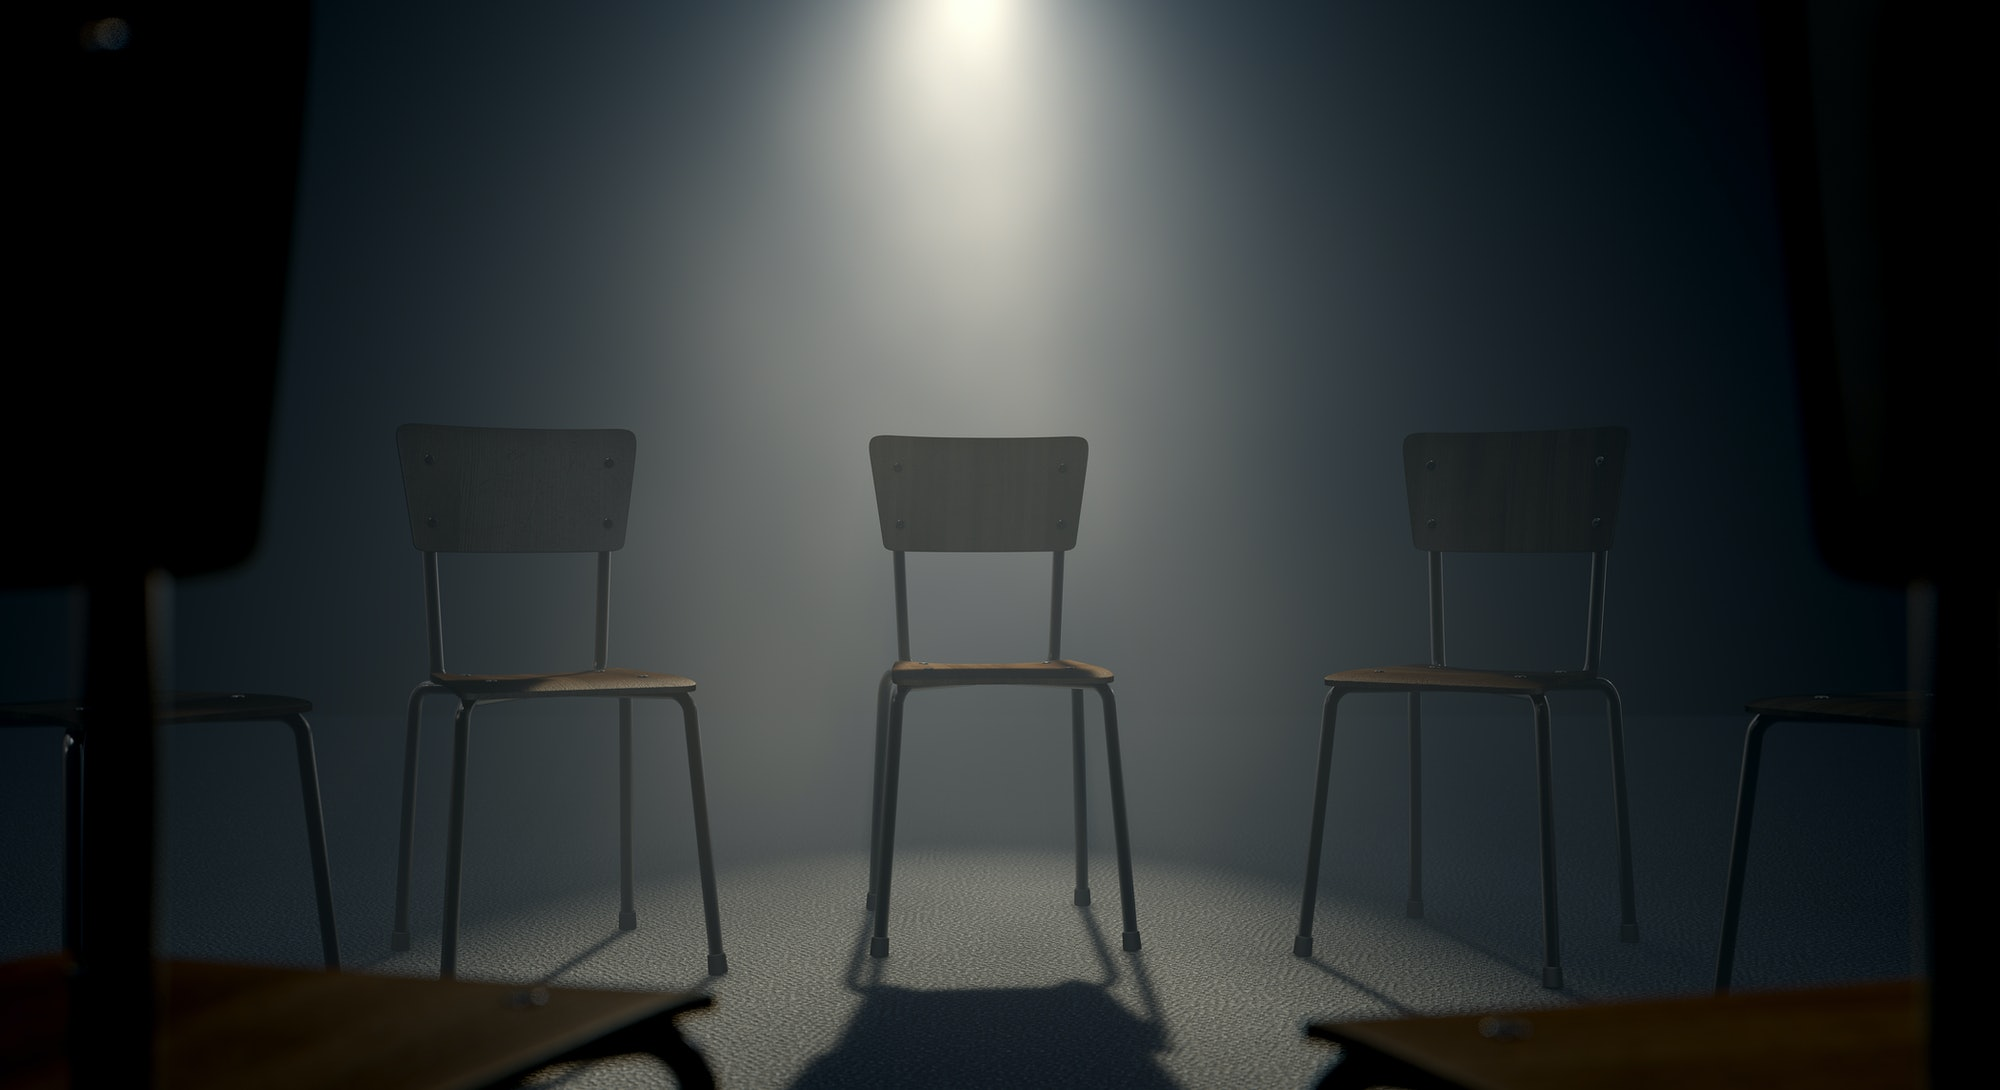 A 3D render concept of a group of chairs in a circular formation with one chair highlighted by a sin...